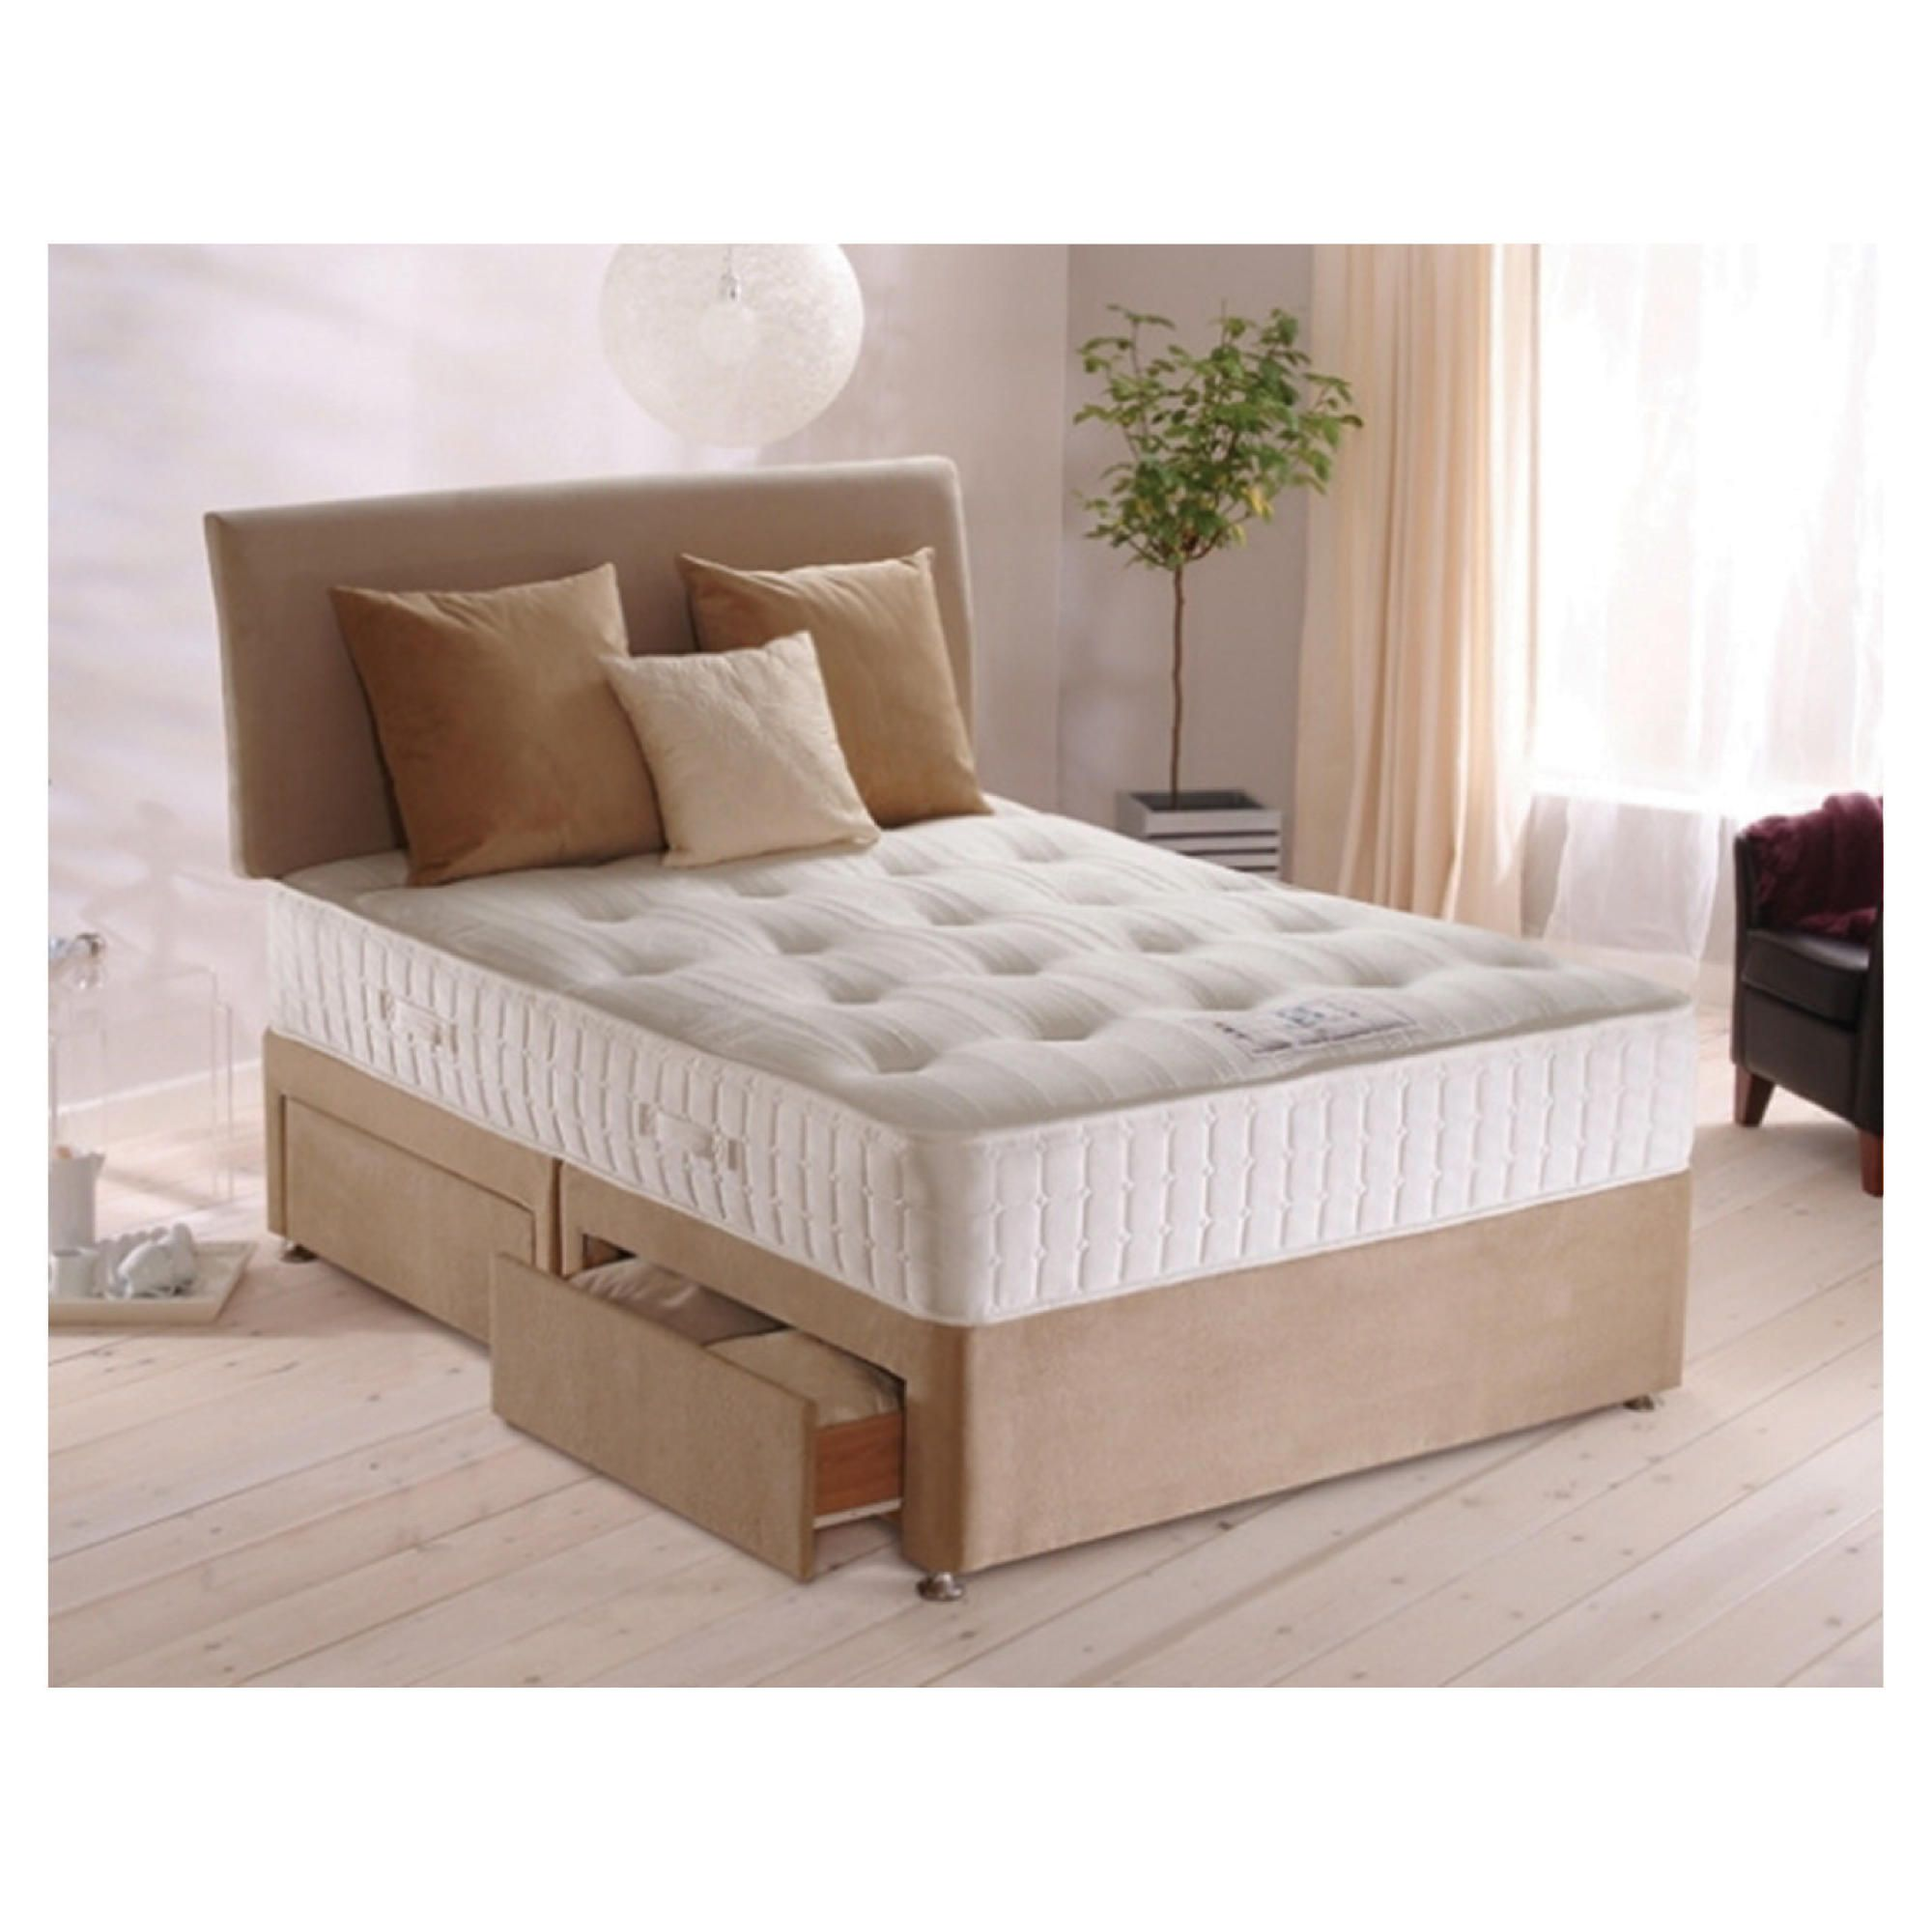 Sealy Purity Pocket Ortho Double Non Storage Divan Bed at Tesco Direct